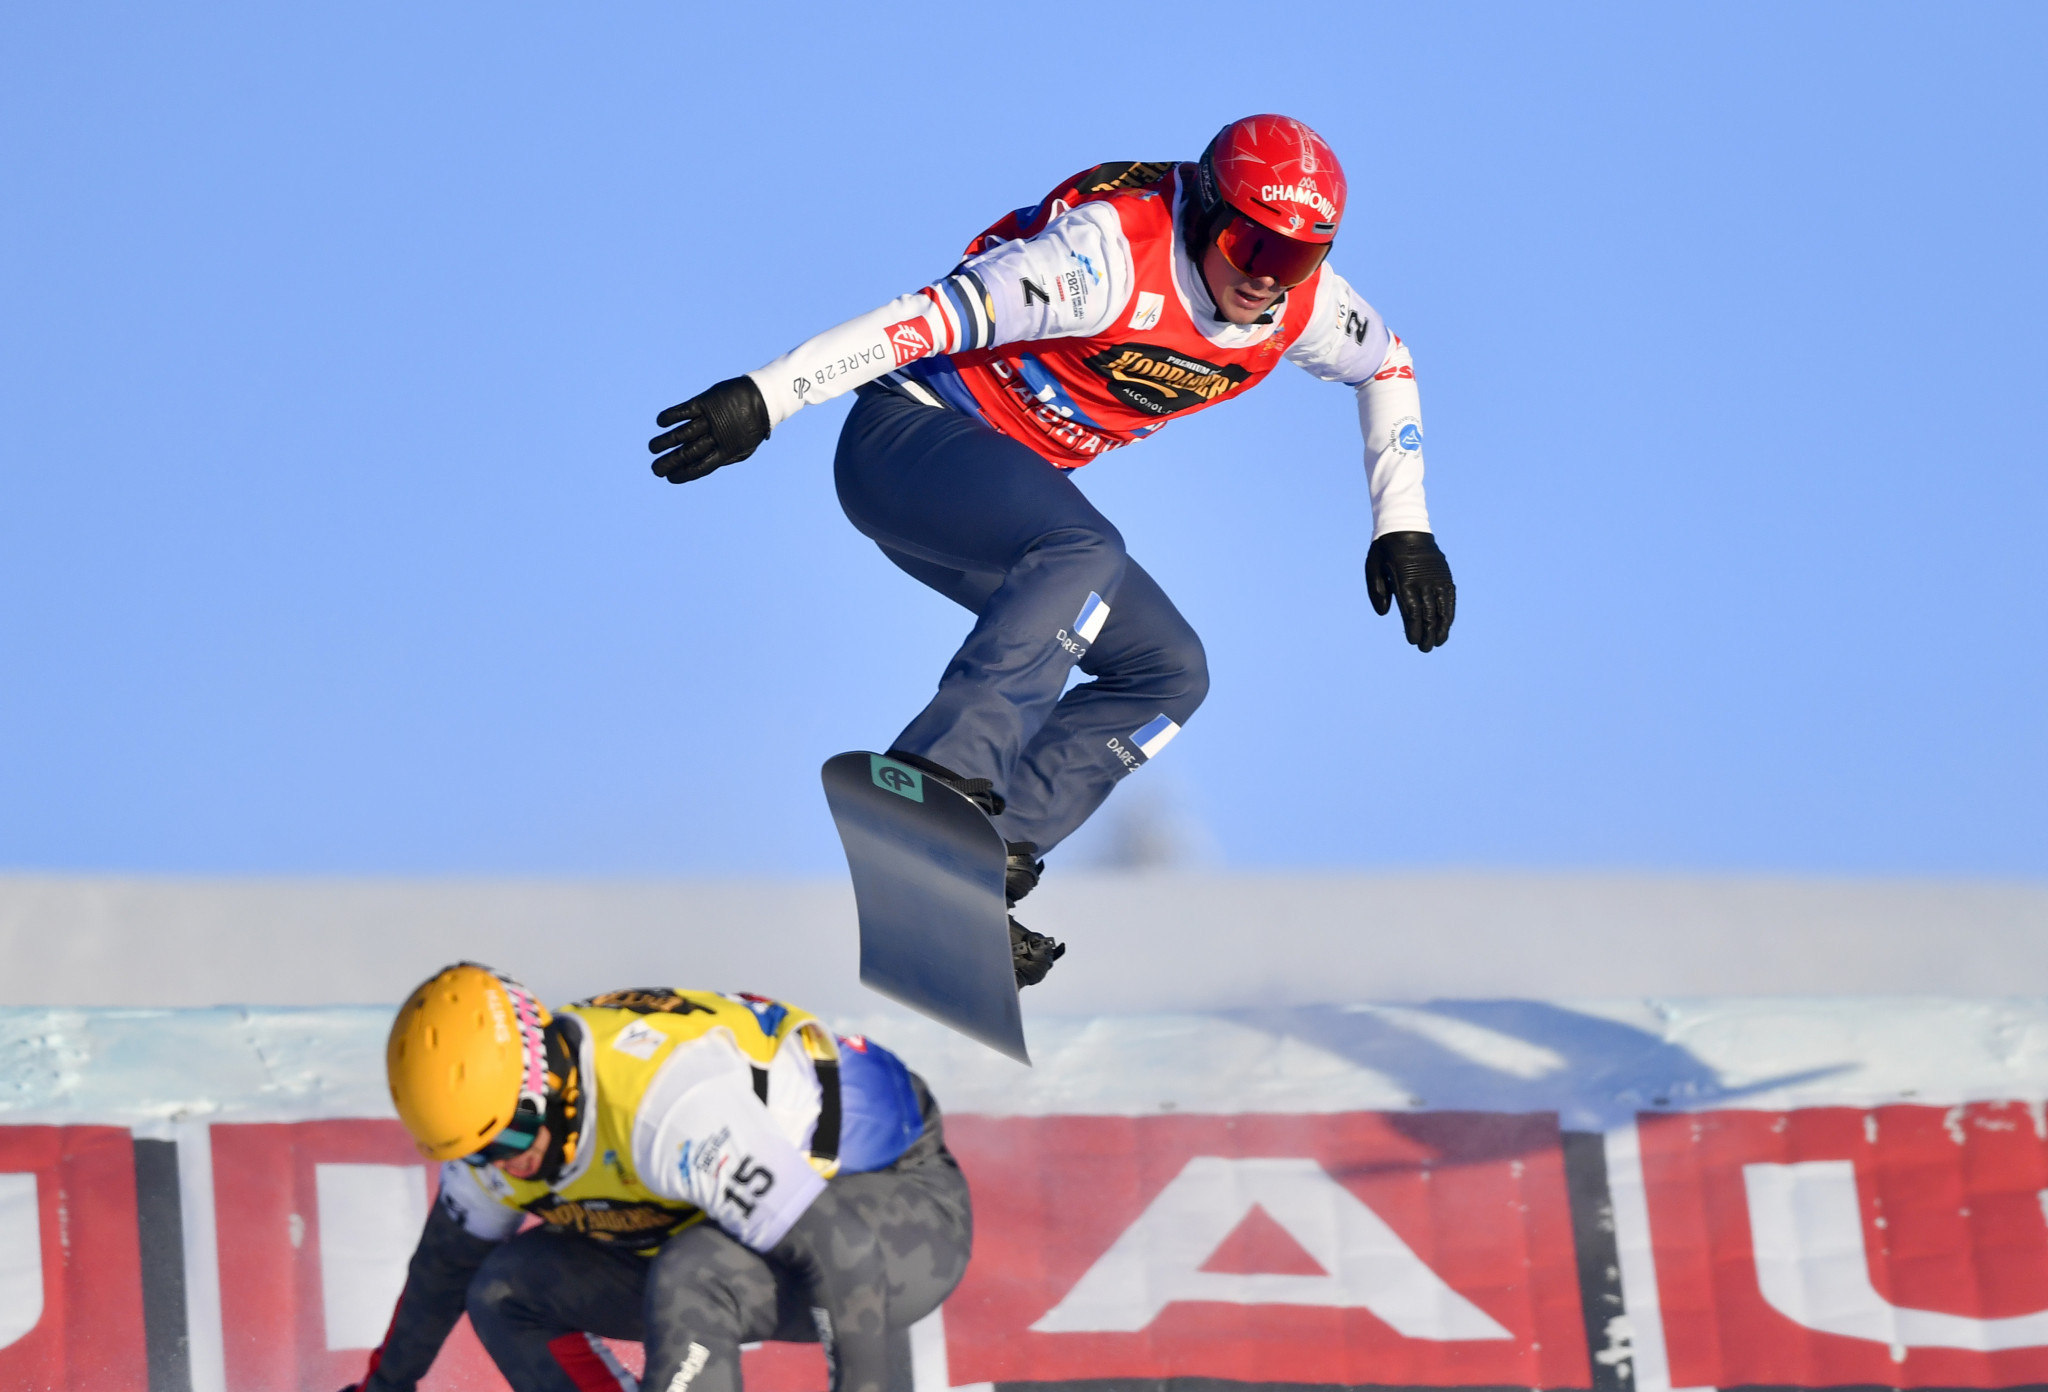 Merlin Surget came out on top in the men's qualification round in Bakuriani ©Getty Images